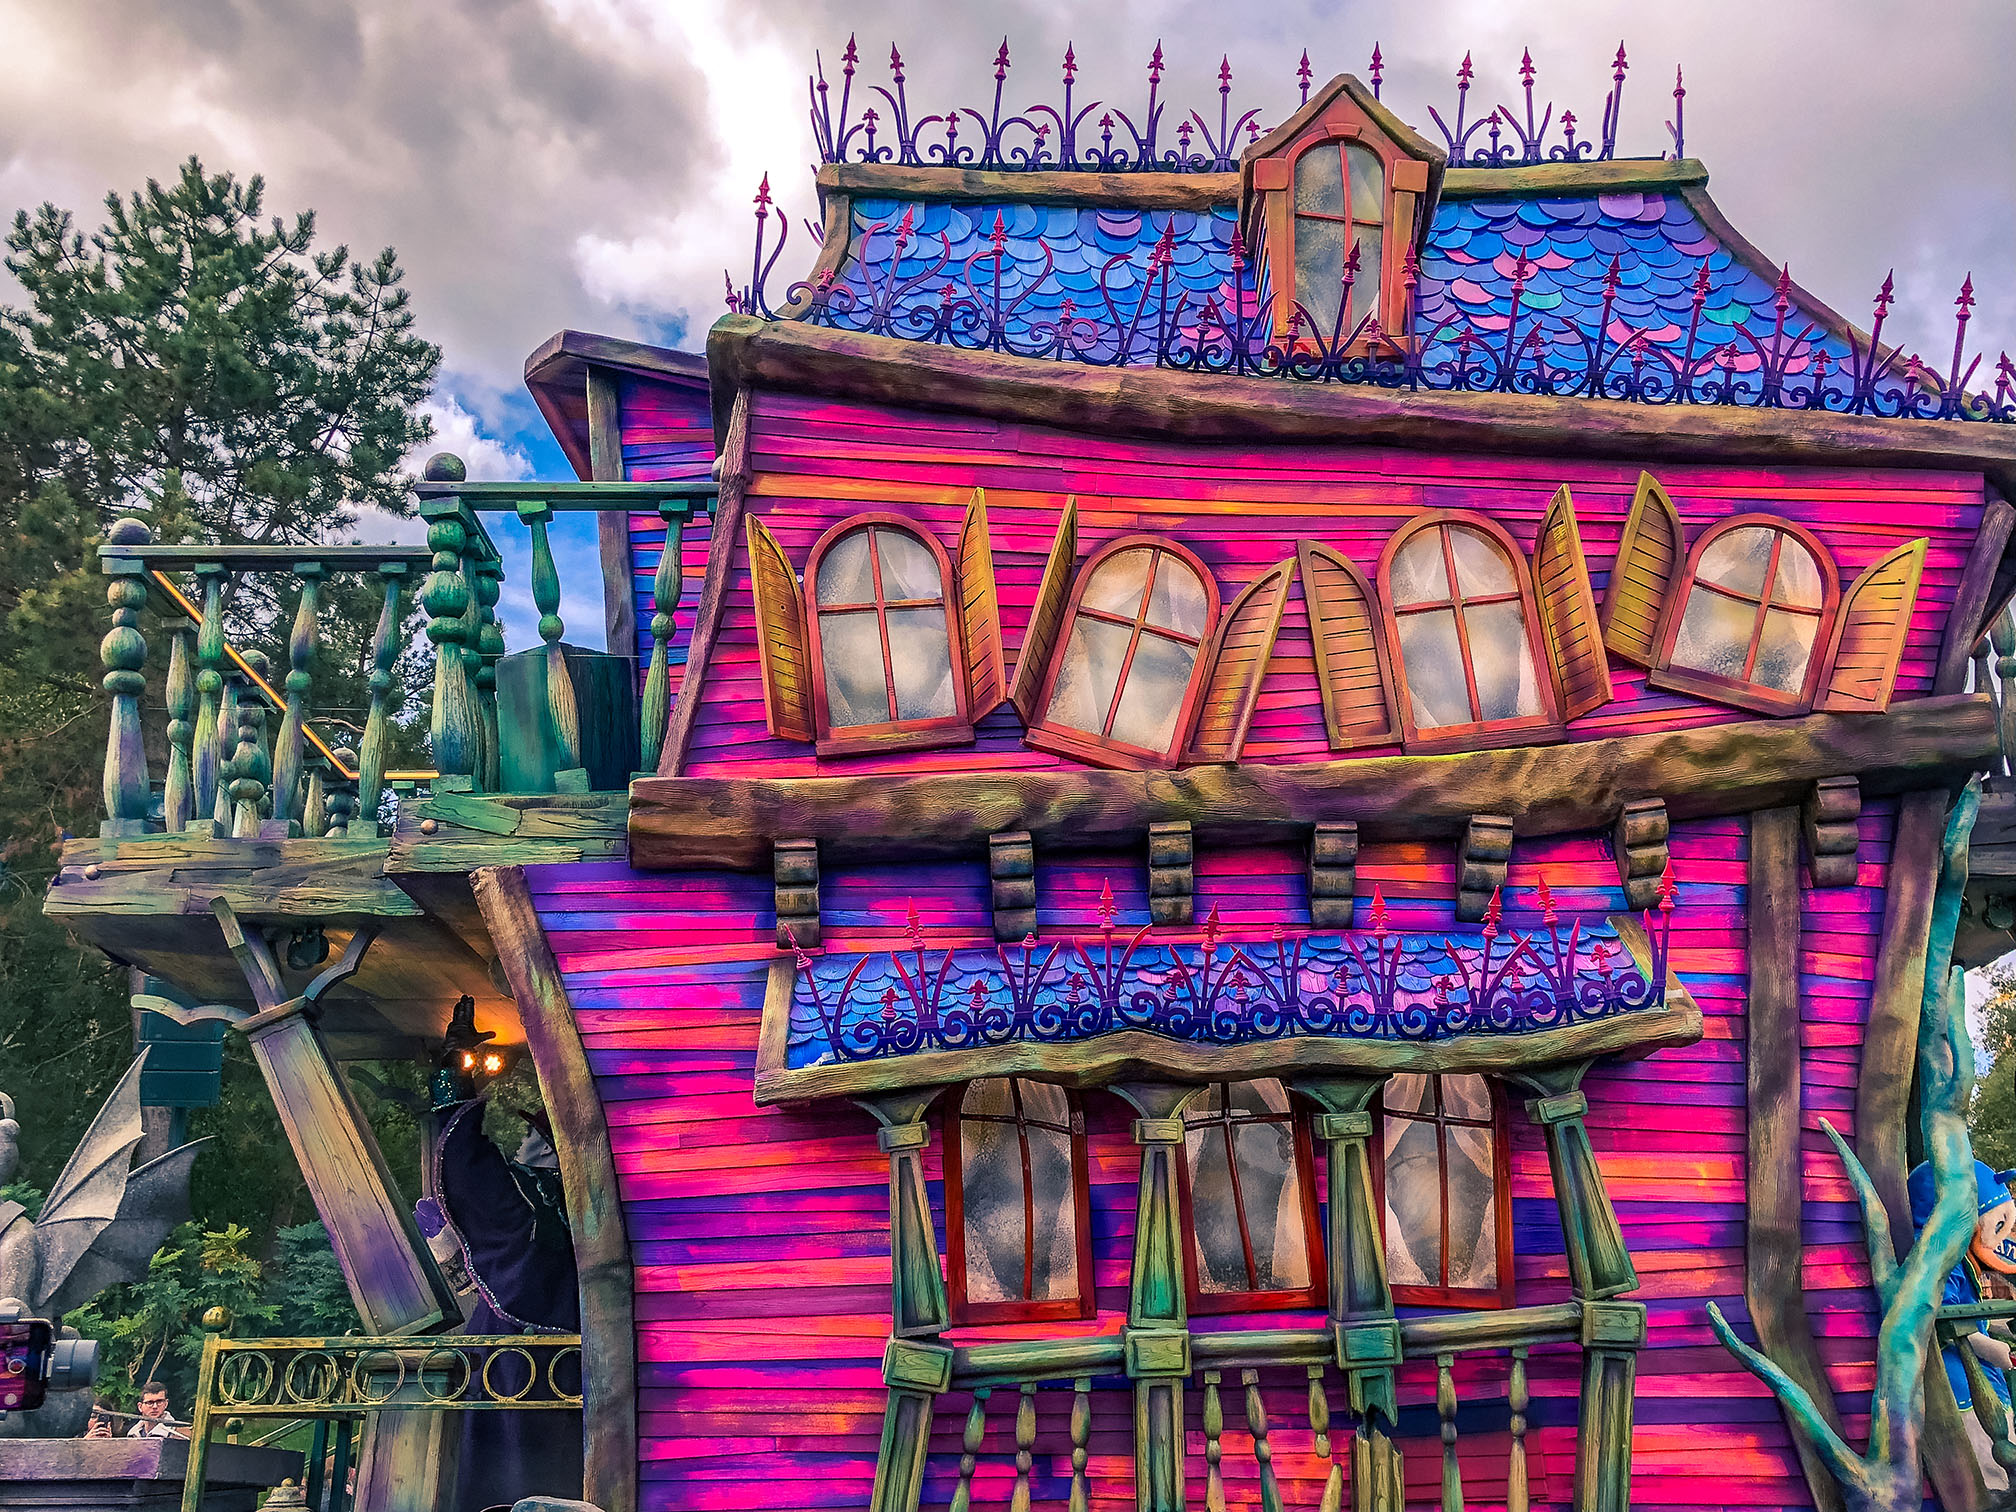 Mickey's Illusion Manor during the 2018 Halloween season at Disneyland Paris